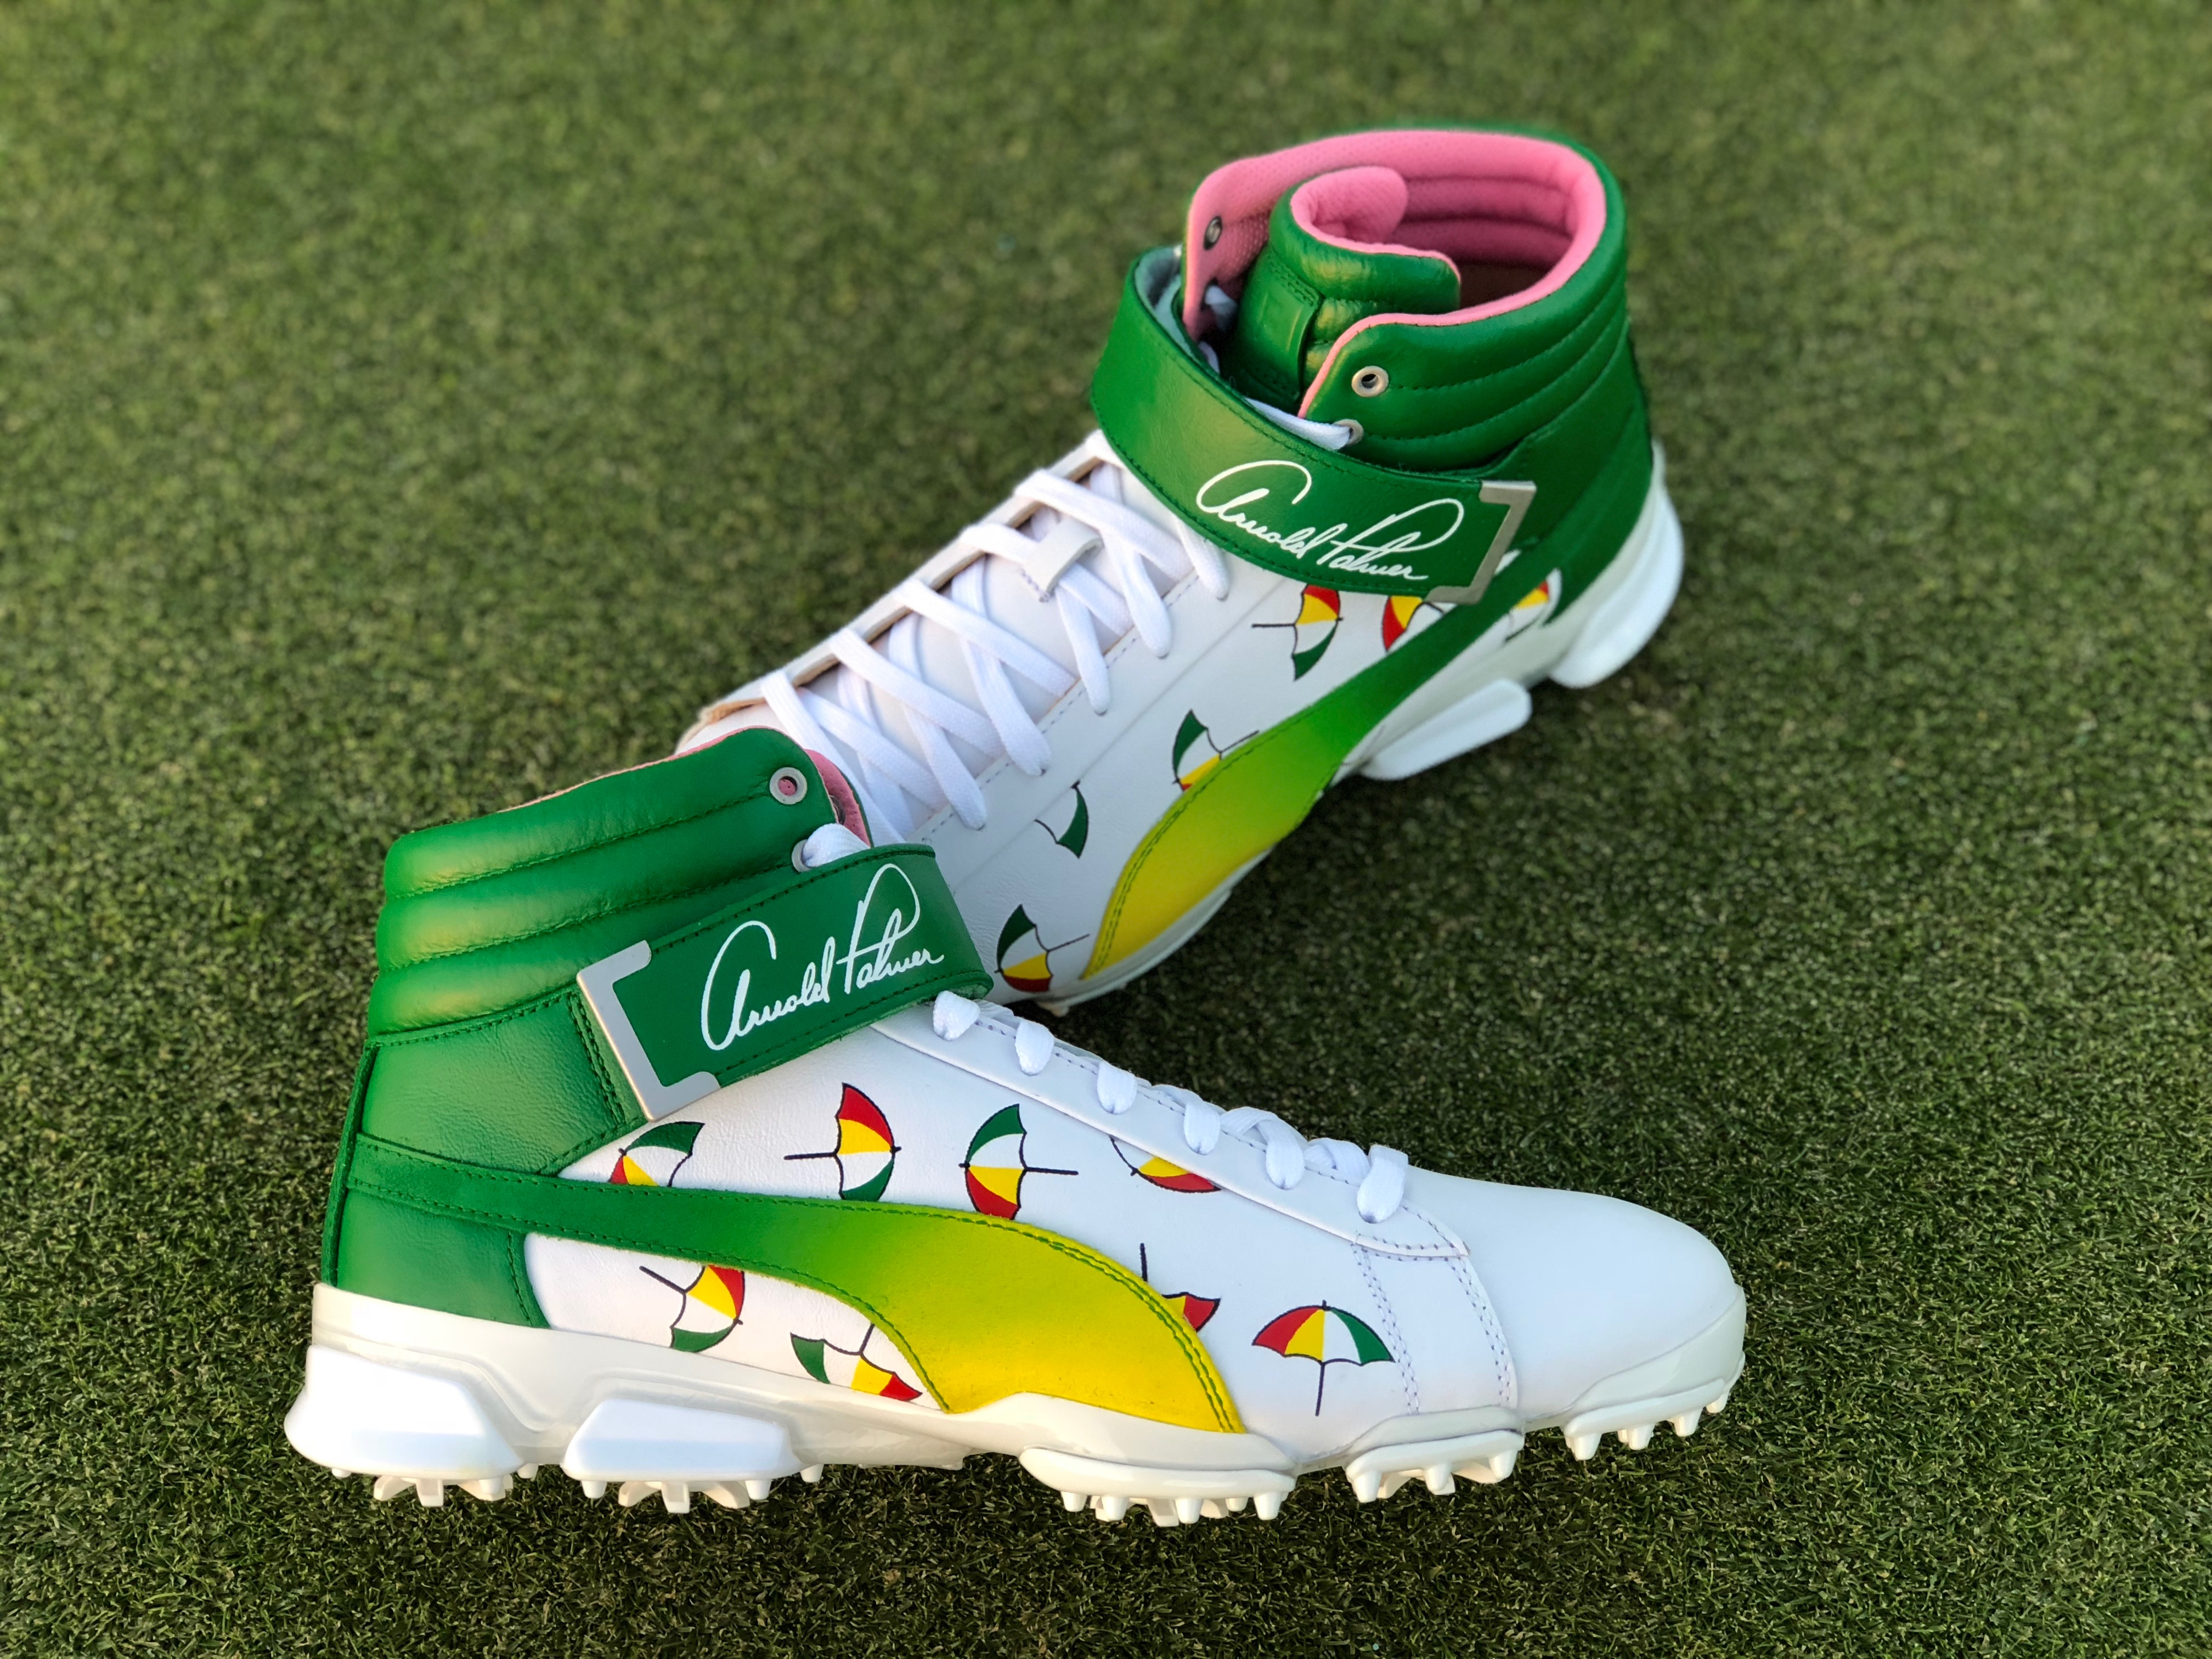 Puma and Arnie's Army partner to raise money for charity with custom shoes and hats